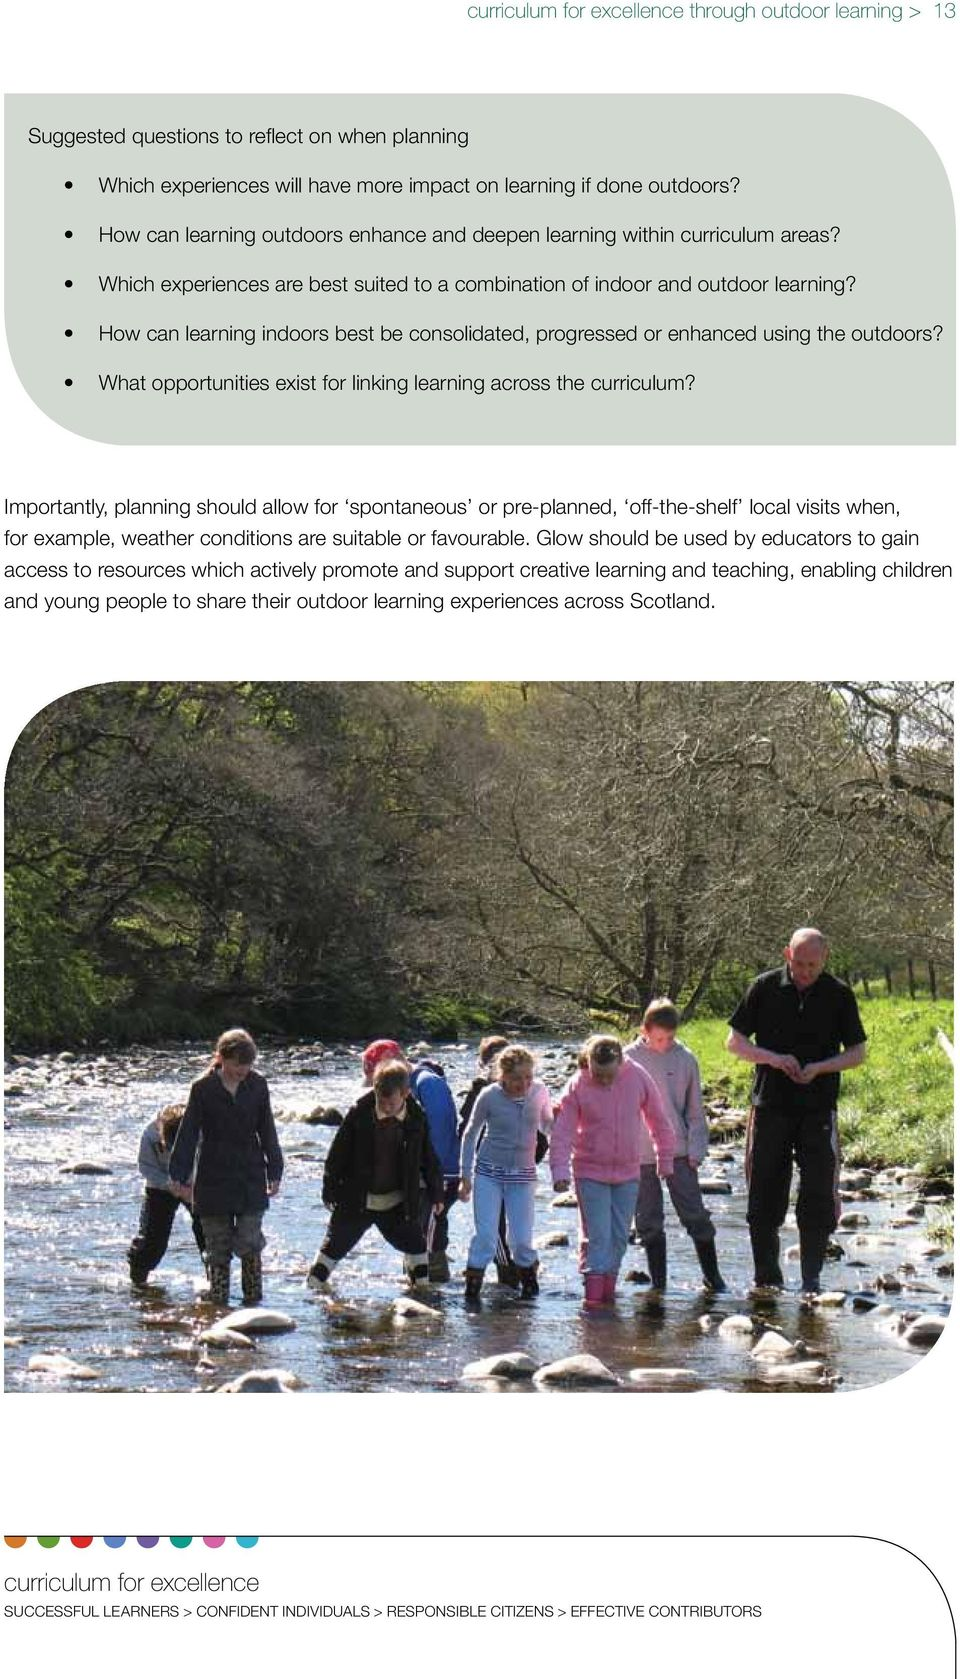 How can learning indoors best be consolidated, progressed or enhanced using the outdoors? What opportunities exist for linking learning across the curriculum?